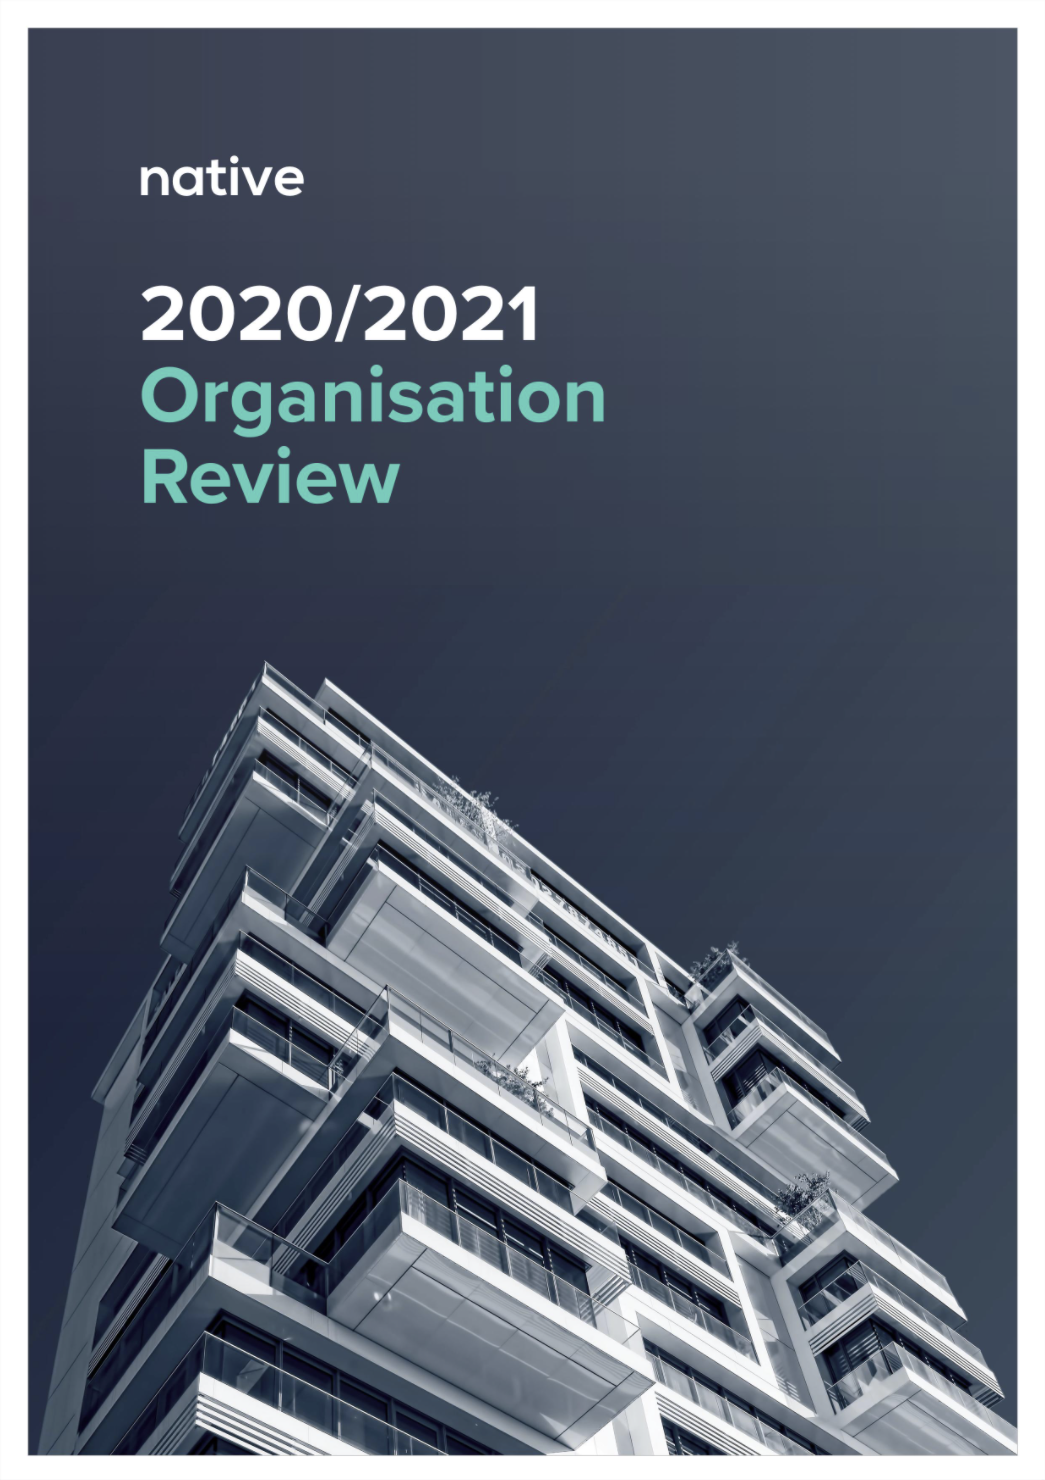 A report cover, with a background photograph of a new apartment block against a clear sky, and a styled title,